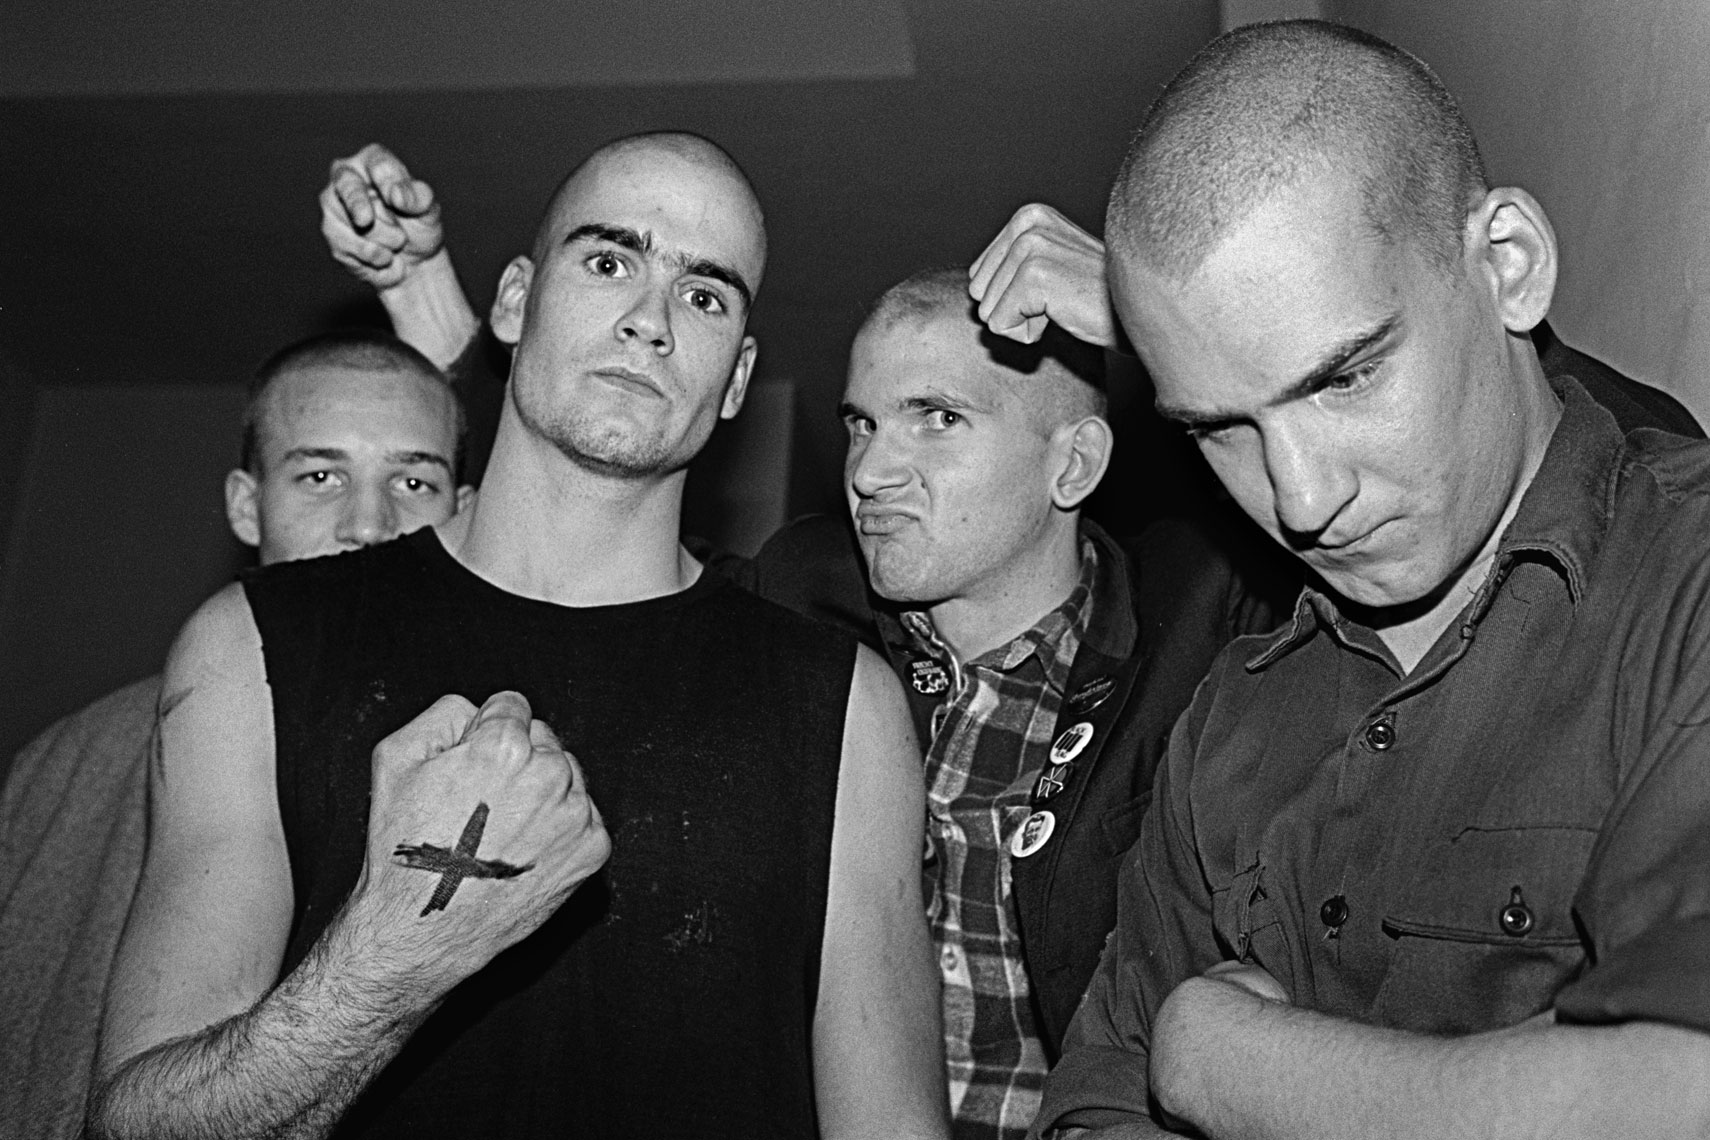 35_Henry-Rollins_Ian-Macaye-after-heads-shaved-at-Dead-Kennedys-Show_0581.jpg